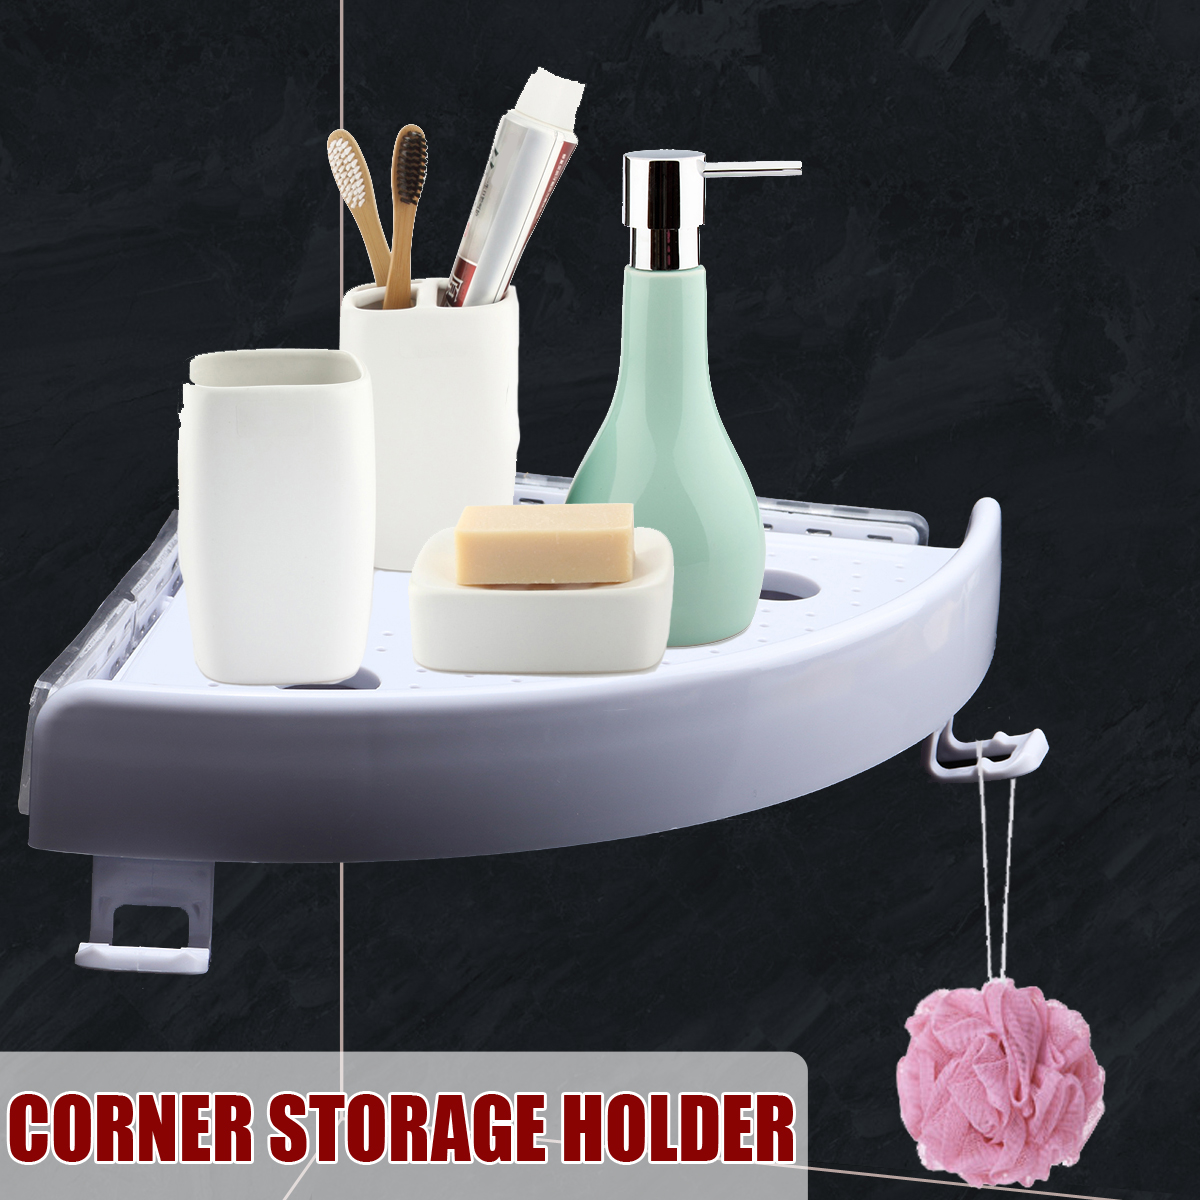 Bathroom Shower Corner Storage Paper Shelf Holder Shower Caddy Holder Rack White Organizer